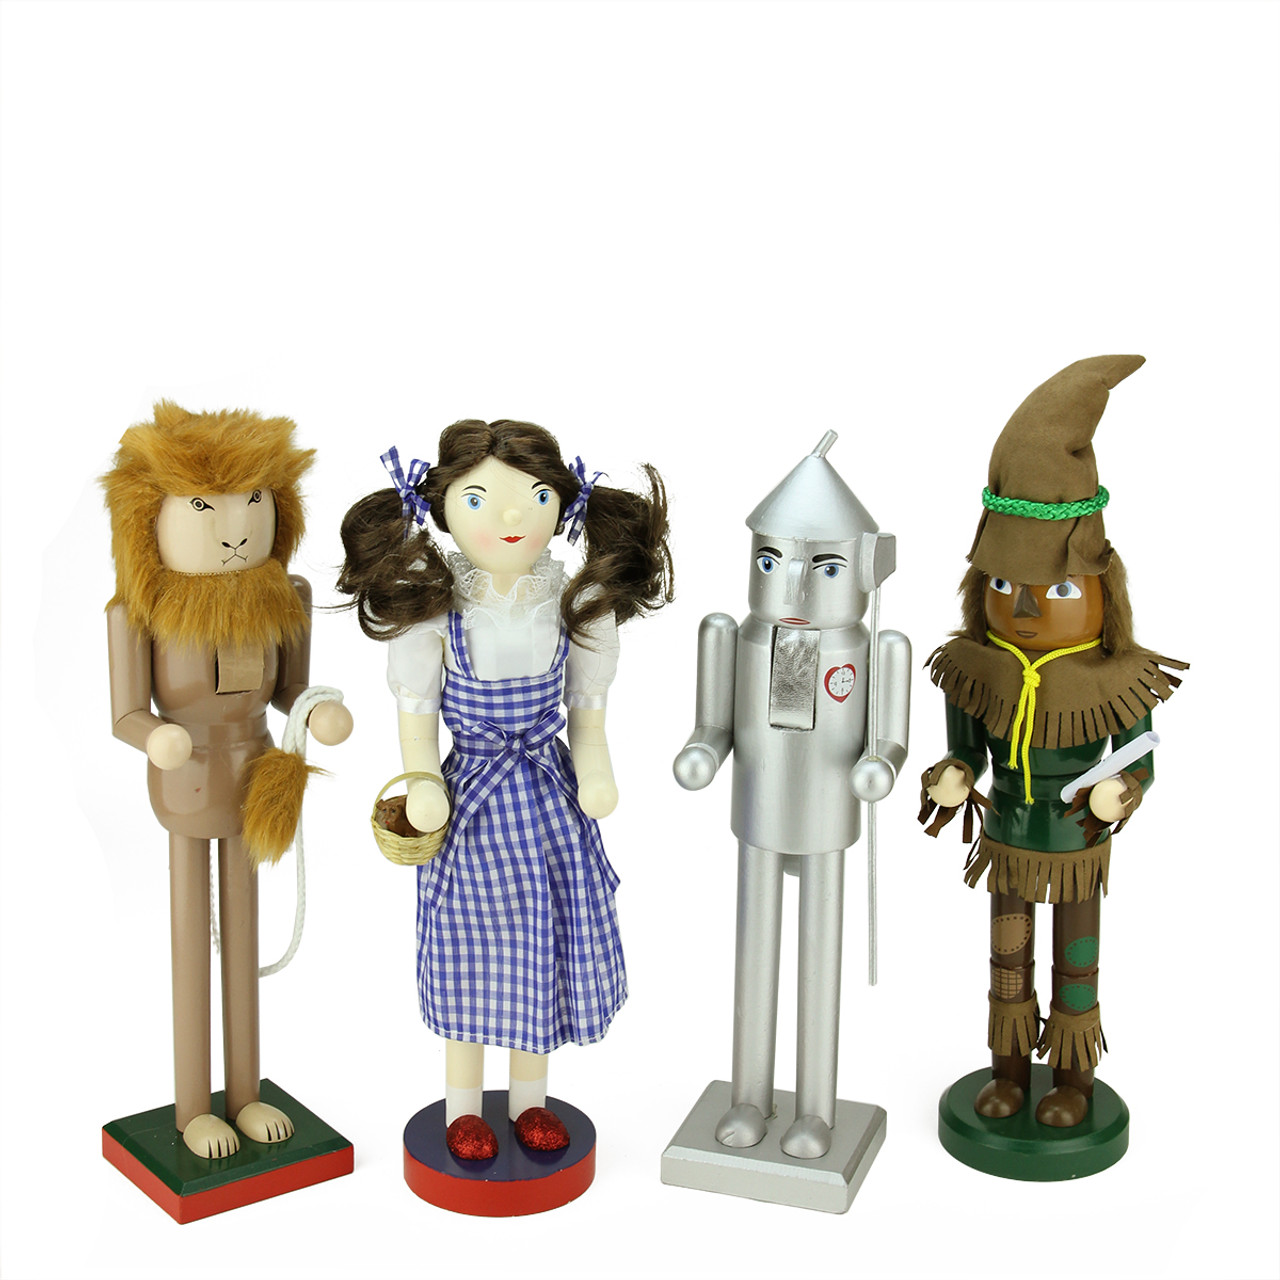 Set of 4 Decorative Wizard of Oz Wooden Christmas Nutcrackers ...